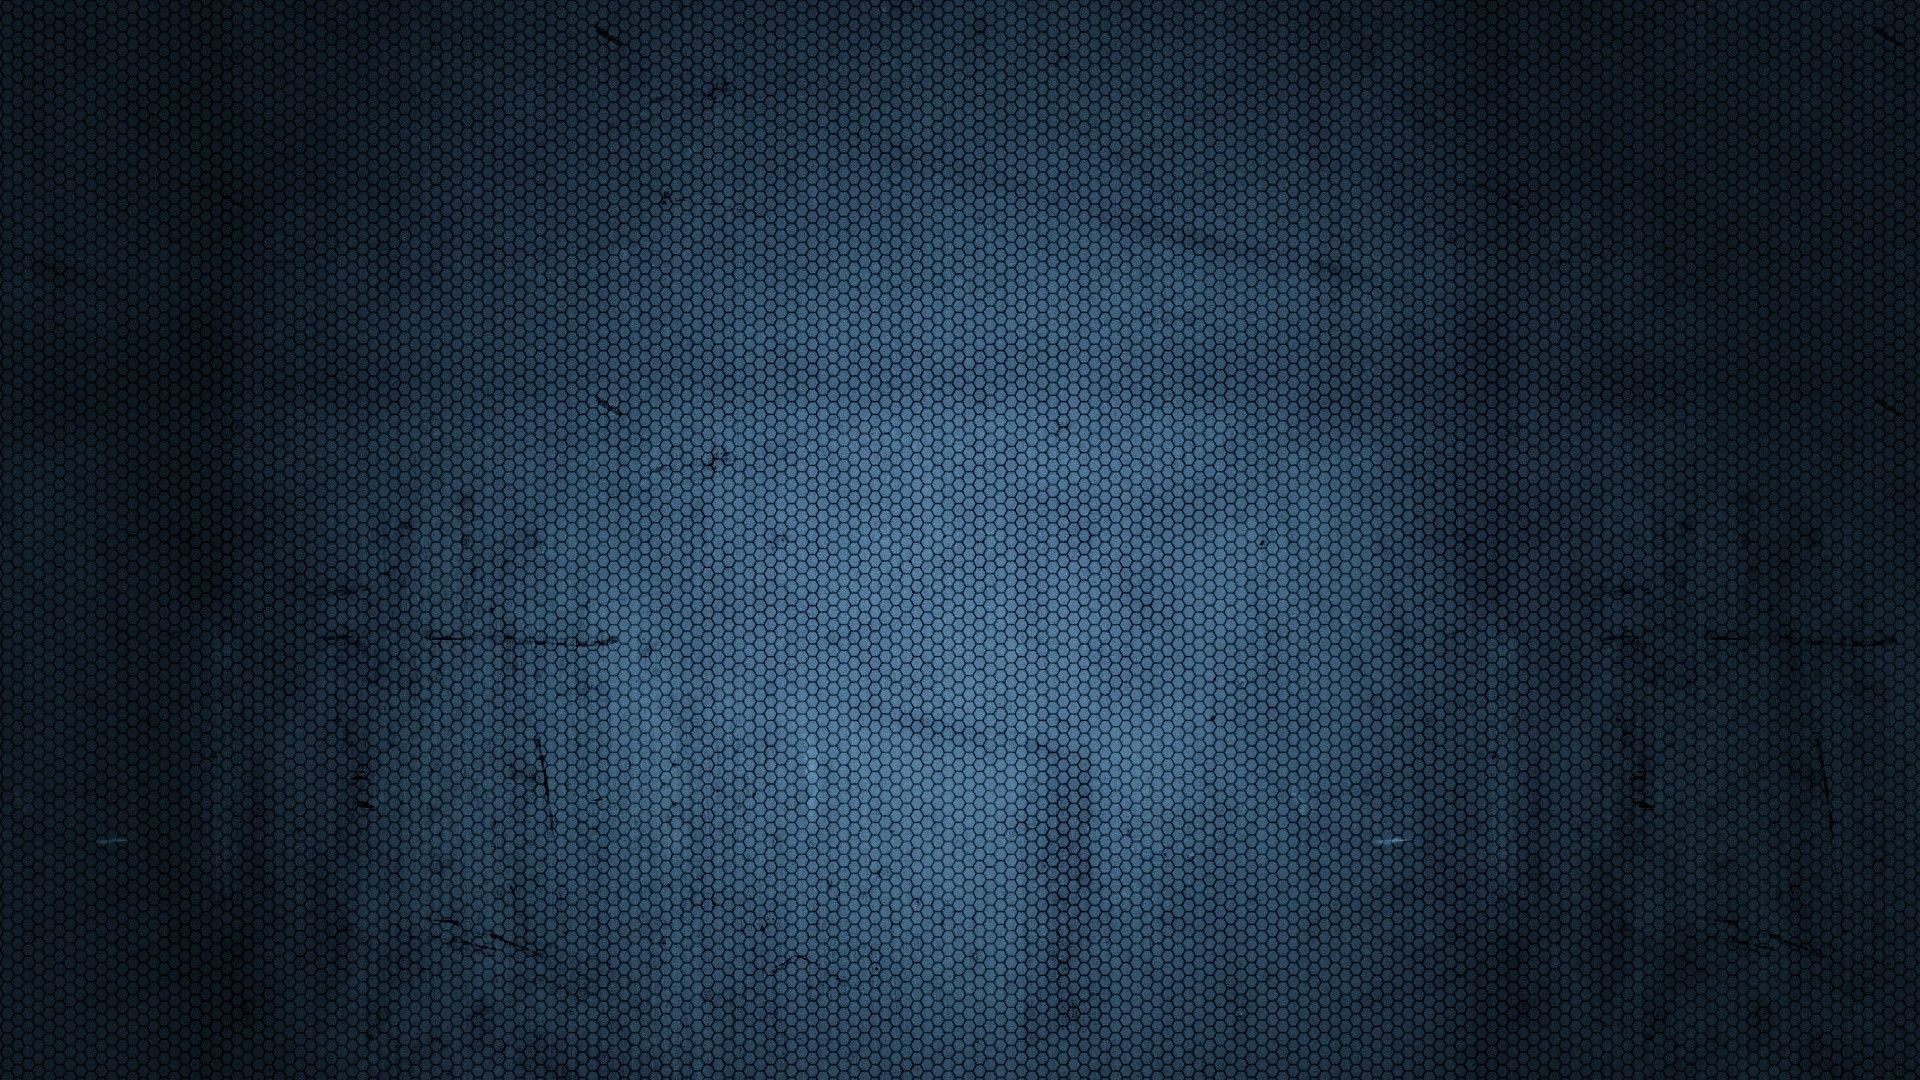 Abstract Dark Wallpaper With Images Dark Blue Wallpaper Blue